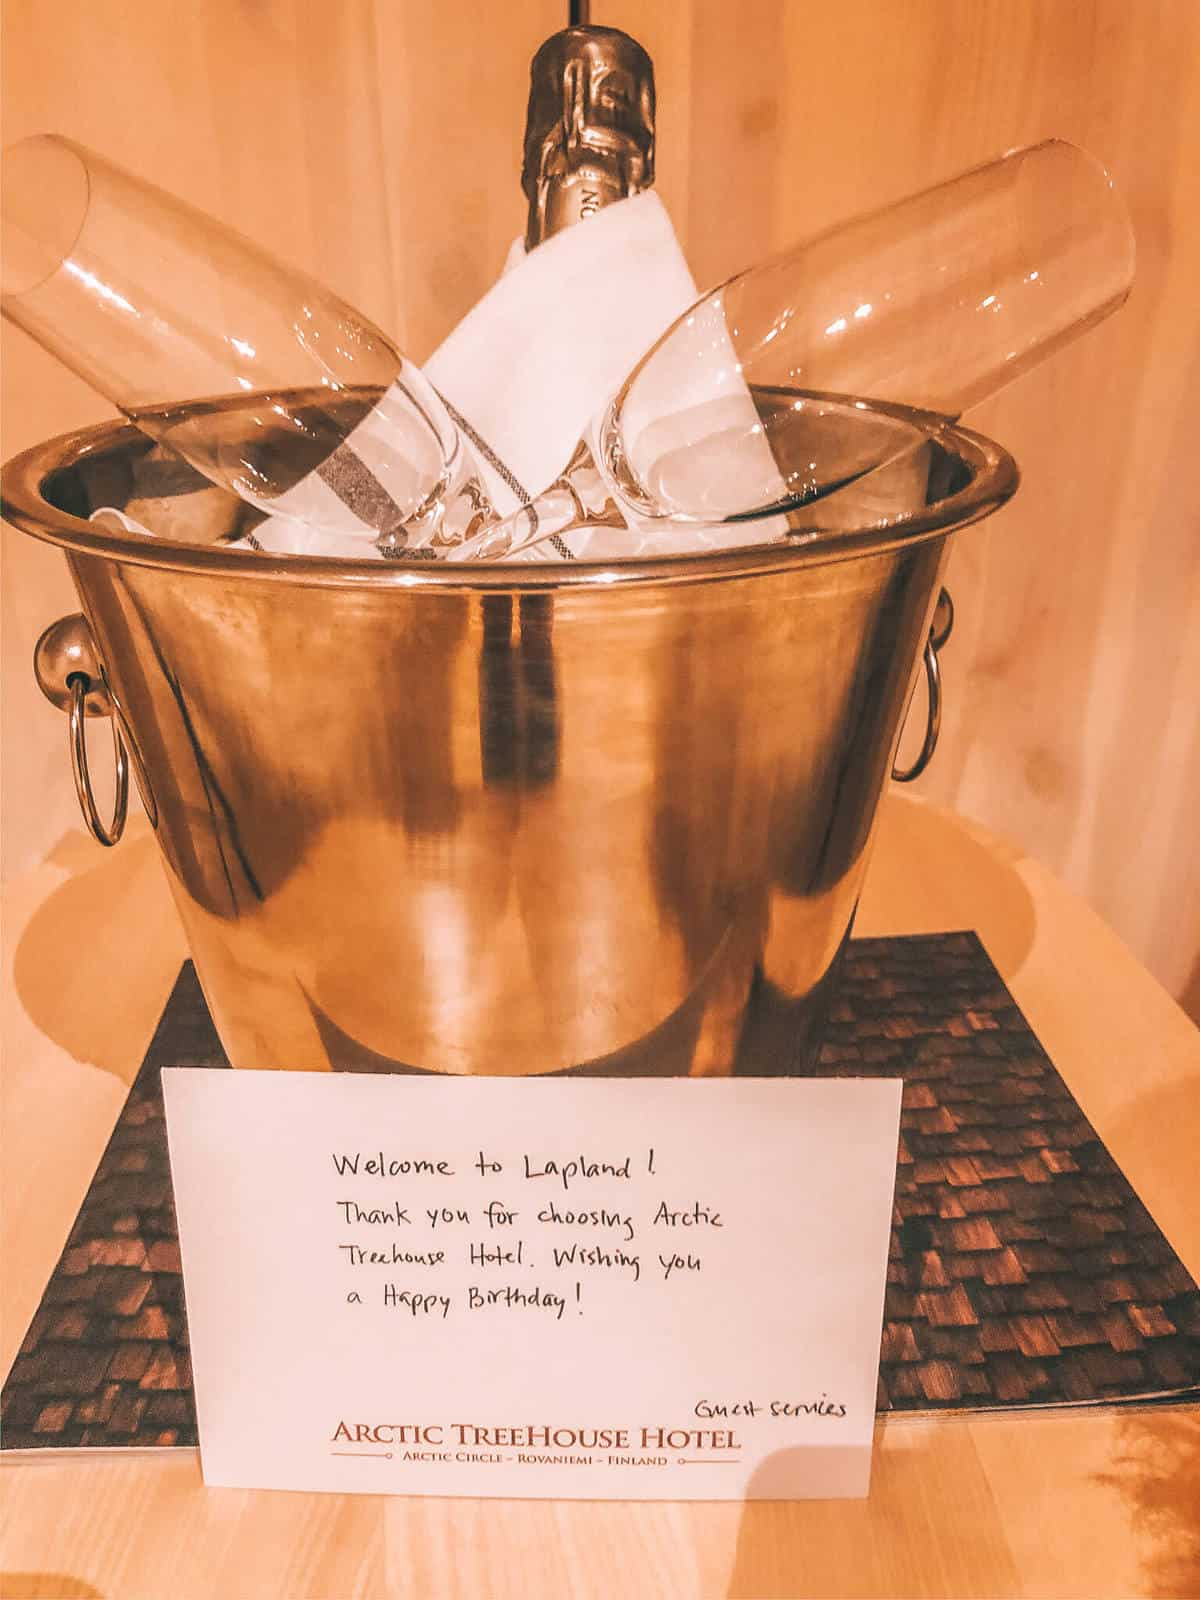 A wine cooler with a bottle of wine and two glasses. A note read Welcome to Lapland! Thank you for choosing Arctic Treehouse Hotel. Wish you a Happy Birthday!